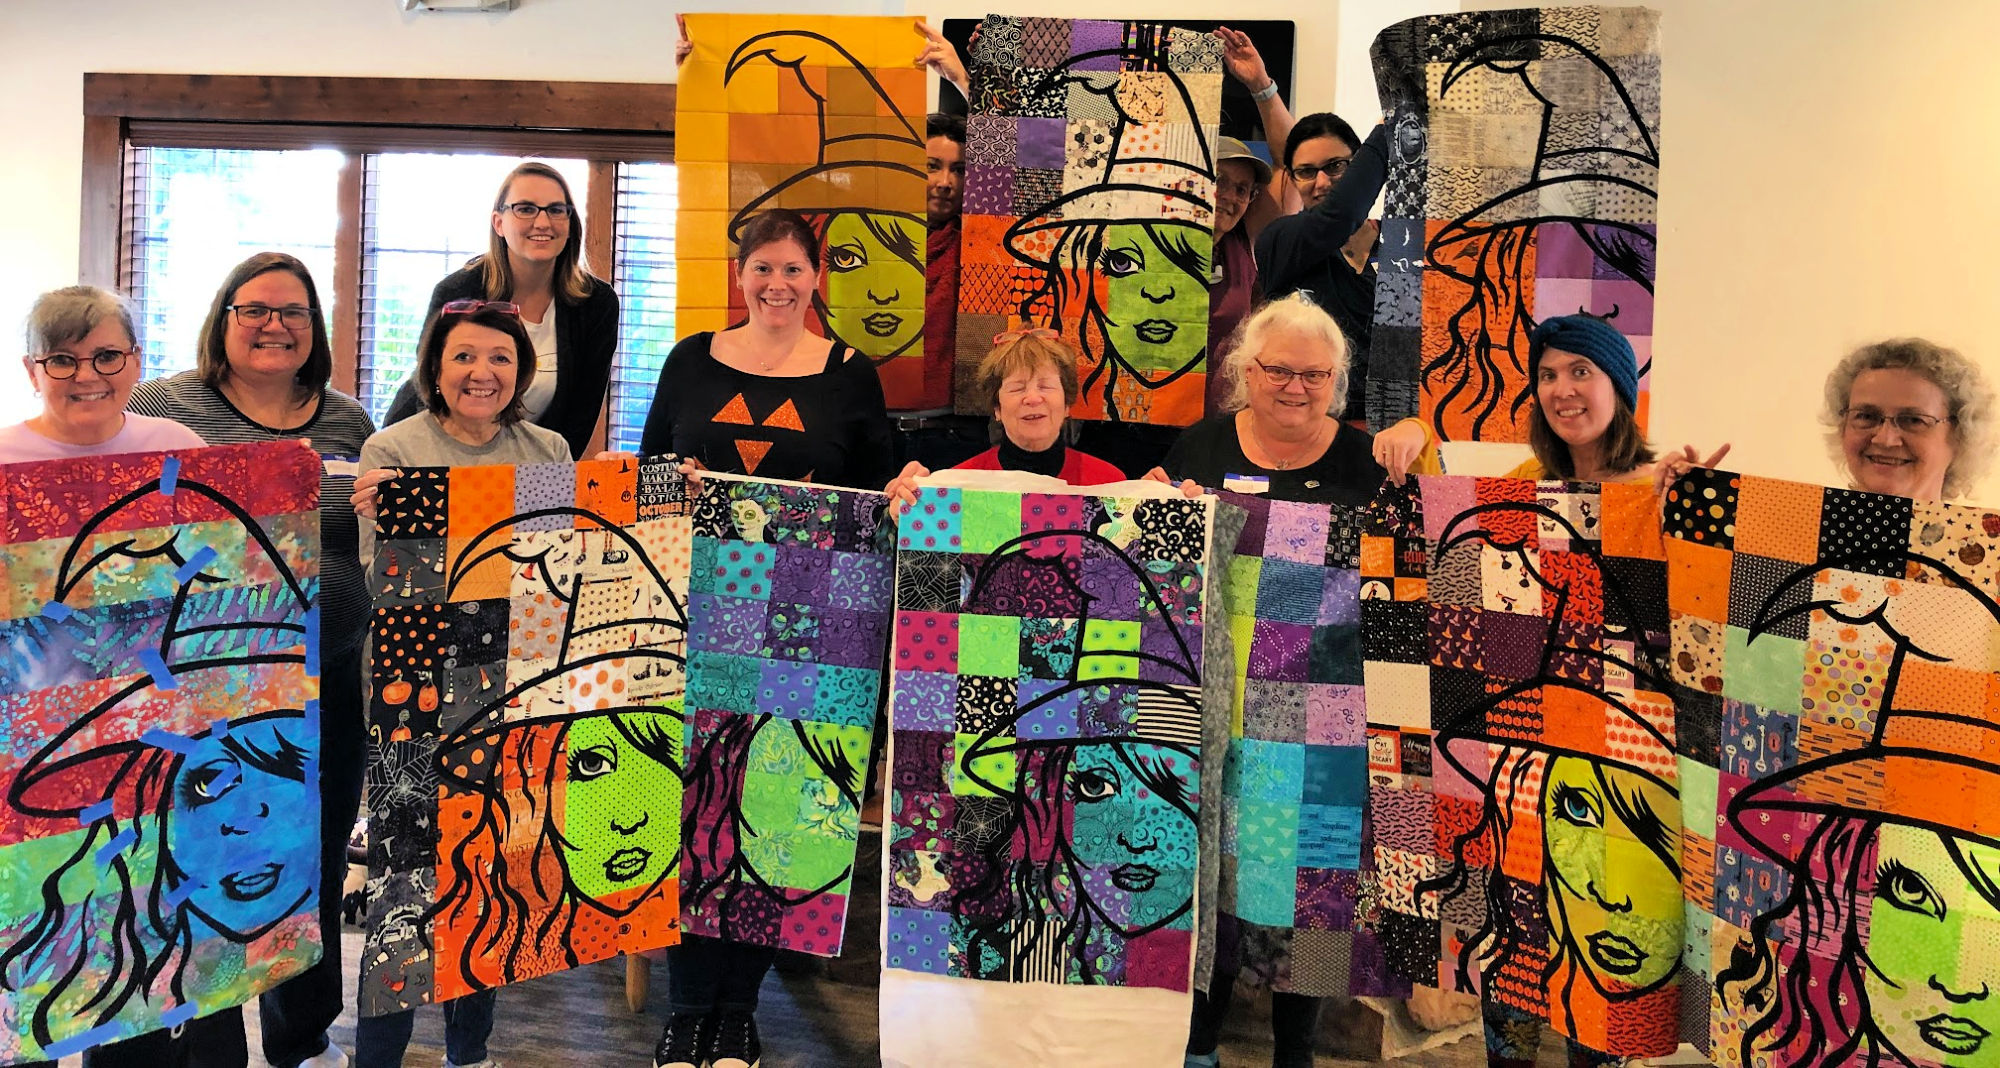 The entire class enjoyed the workshop! These are made from FABRIC!! Let me show some of the details and also some inspiration so you might want to make a Bella Strega Wall Quilt too! #Easy #Patterns #Tutorial #Modern #project #Fabric #Patchwork #DIY #Sampler #Ideas #Basic #Quilt #WallHanging #Quilting #Quilter #SewMuchMoore #SewMuchMooreInStore